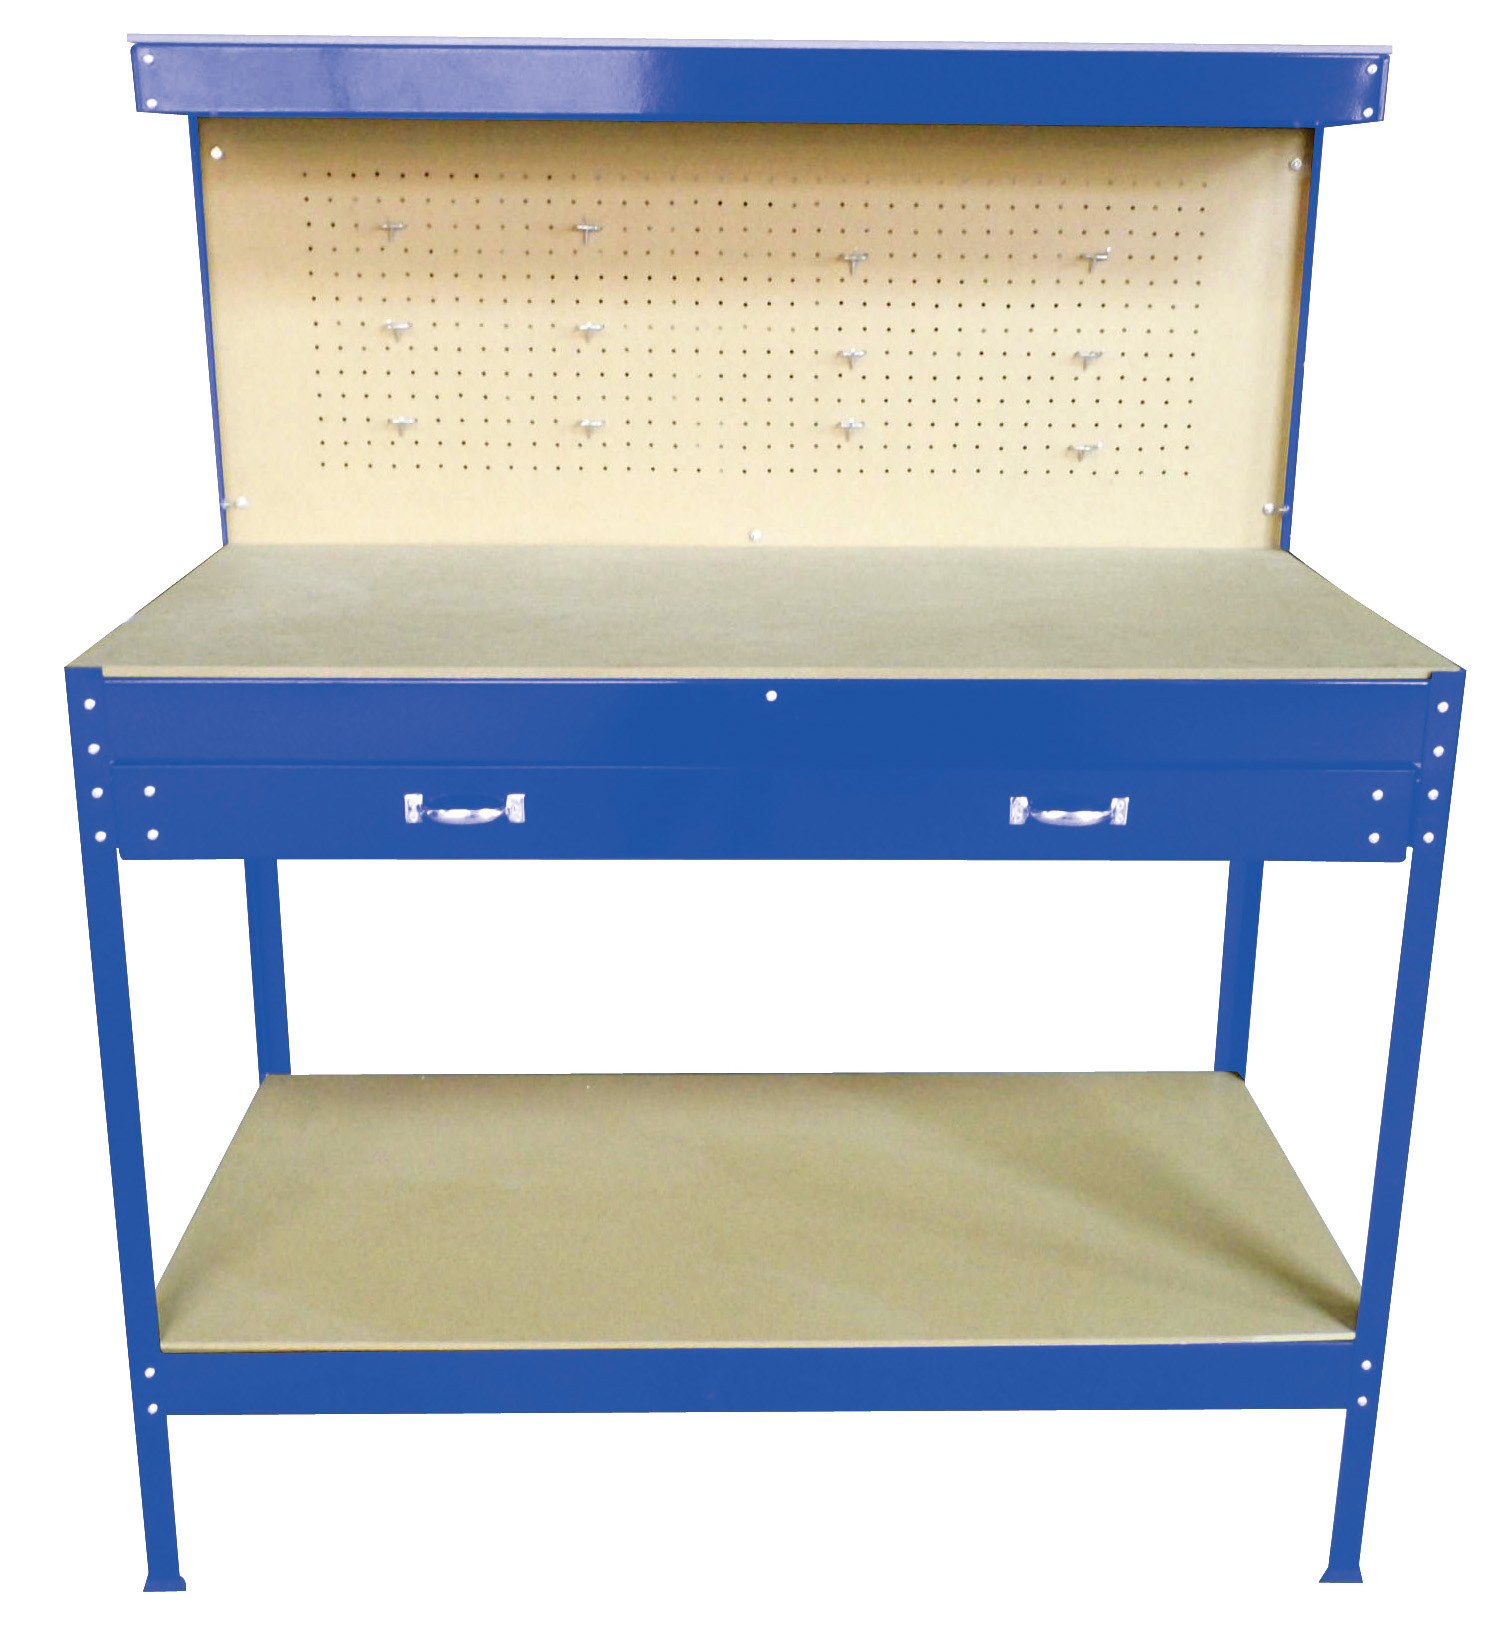 New Blue Steel Tools Box Workbench Garage Workshop Table